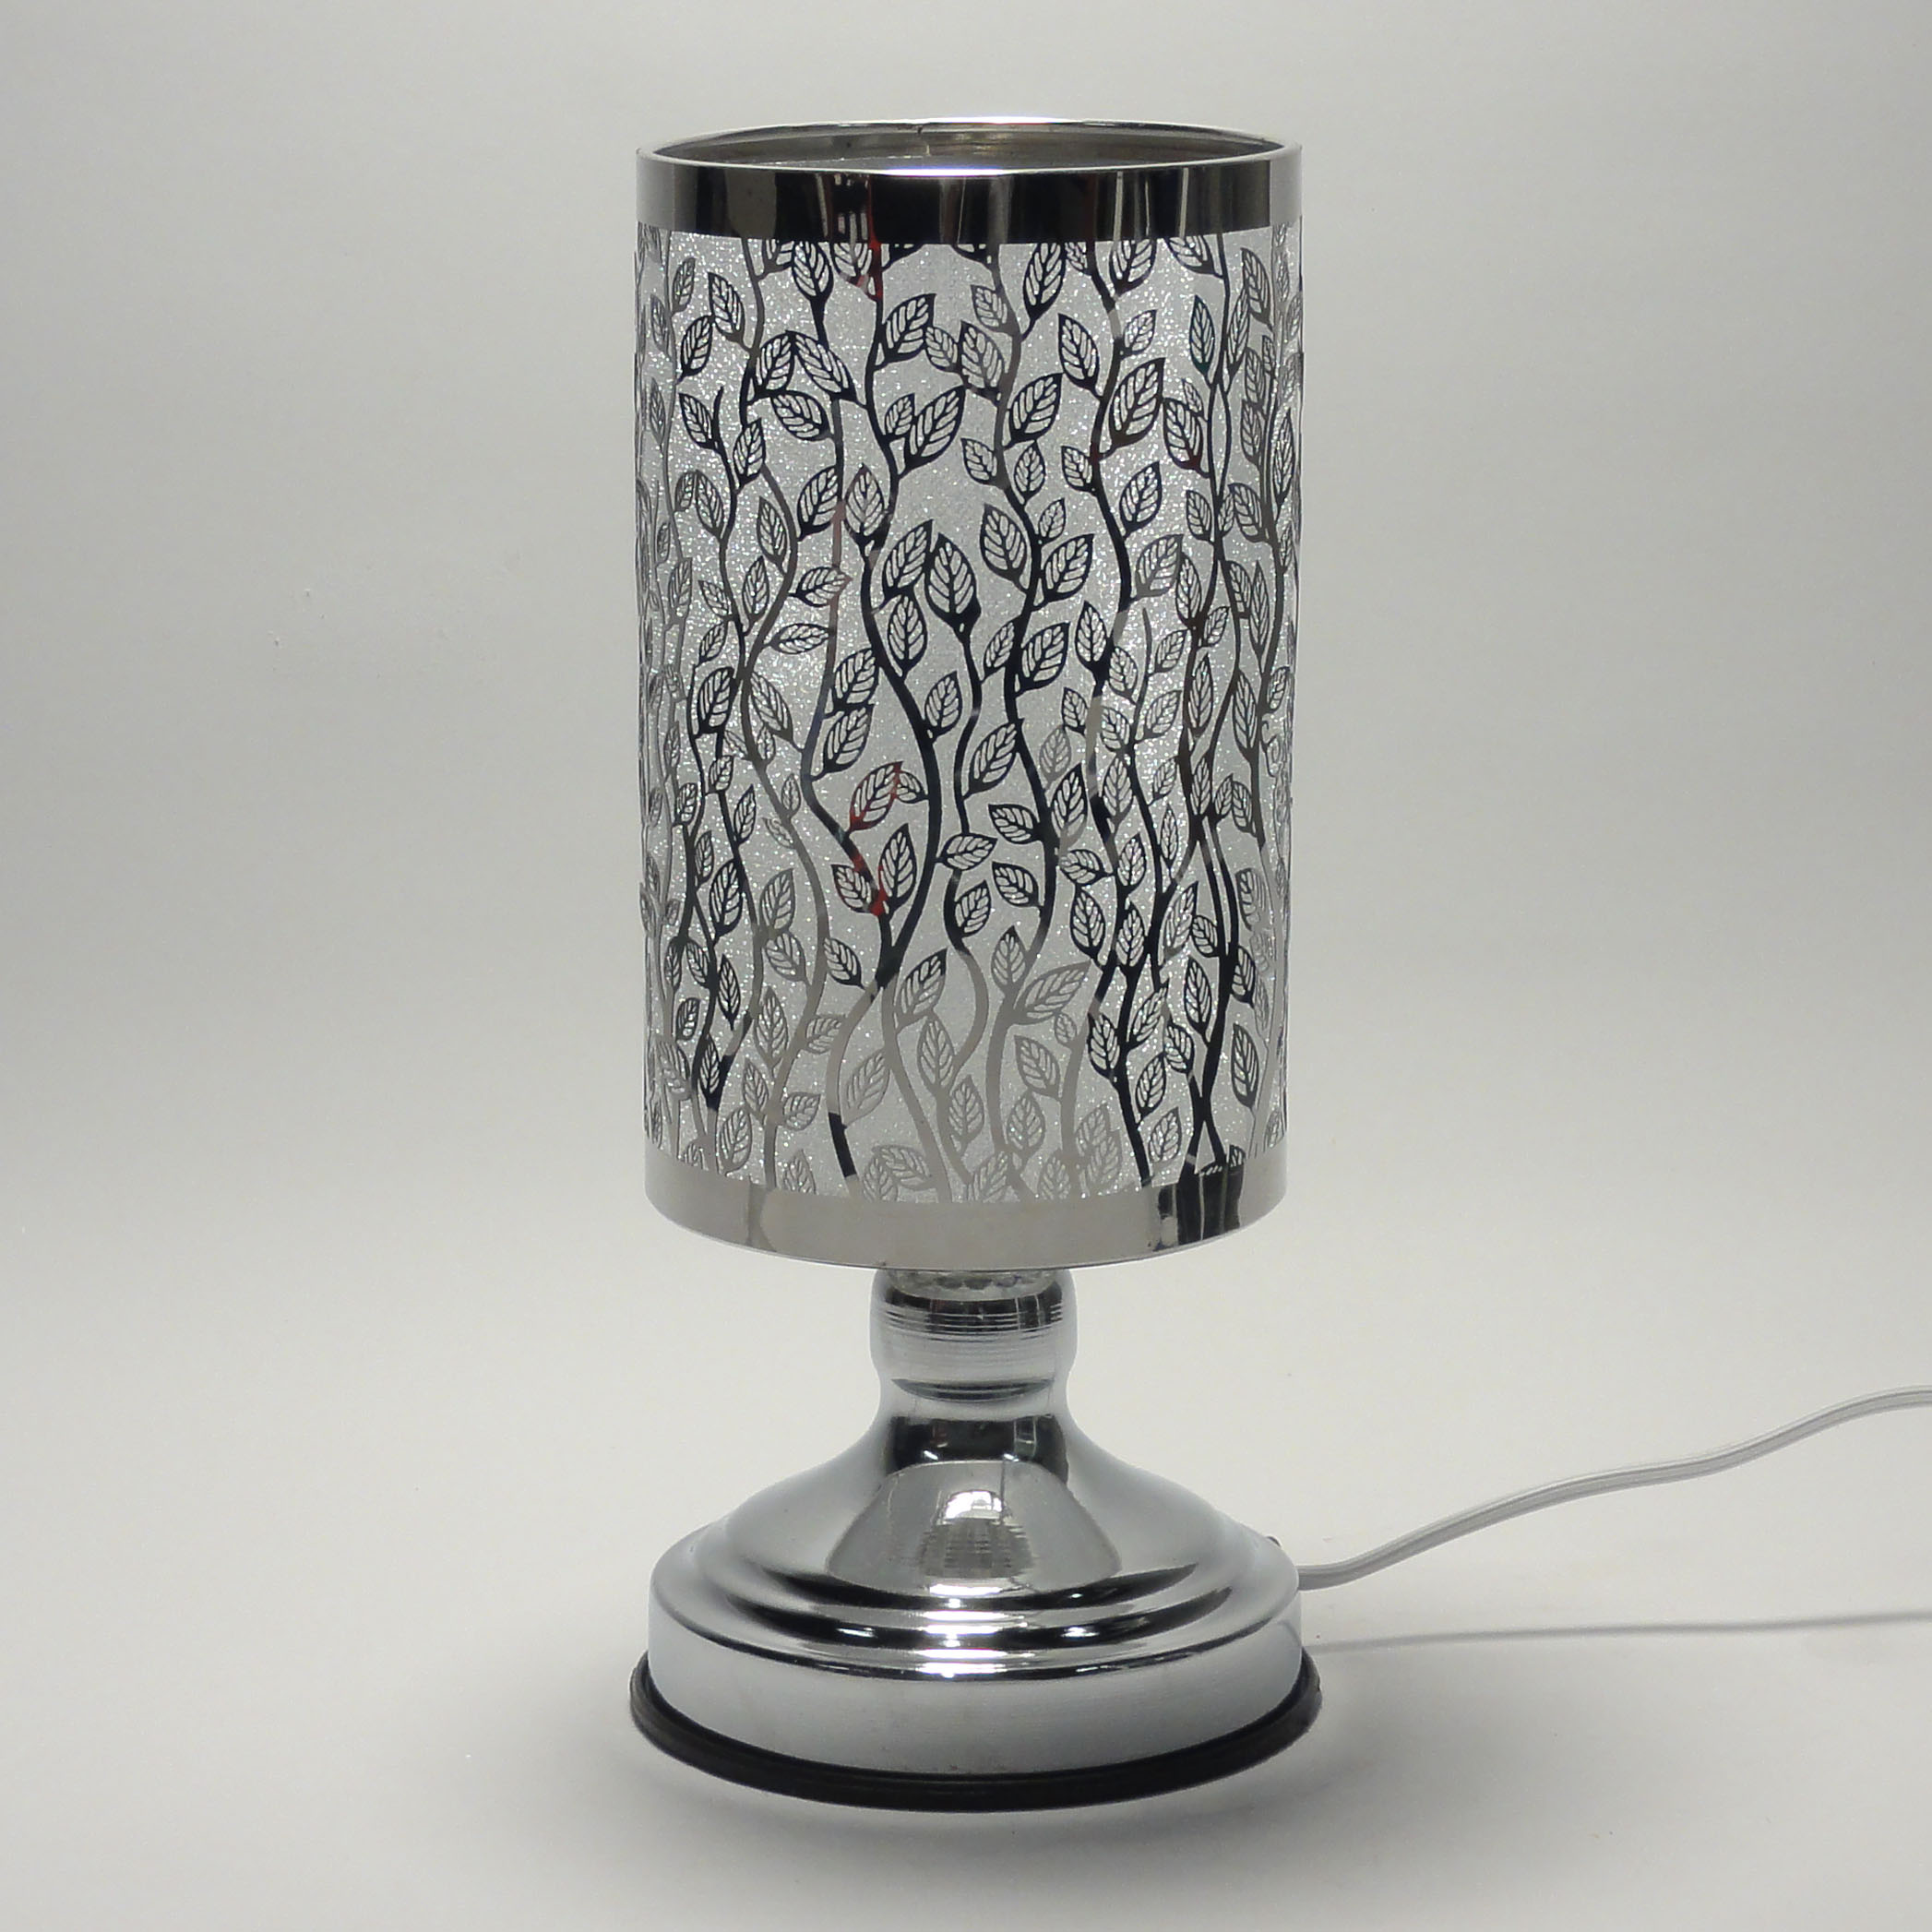 new electric metal silver aroma fragrance oil lamp warmer diffuser. Black Bedroom Furniture Sets. Home Design Ideas